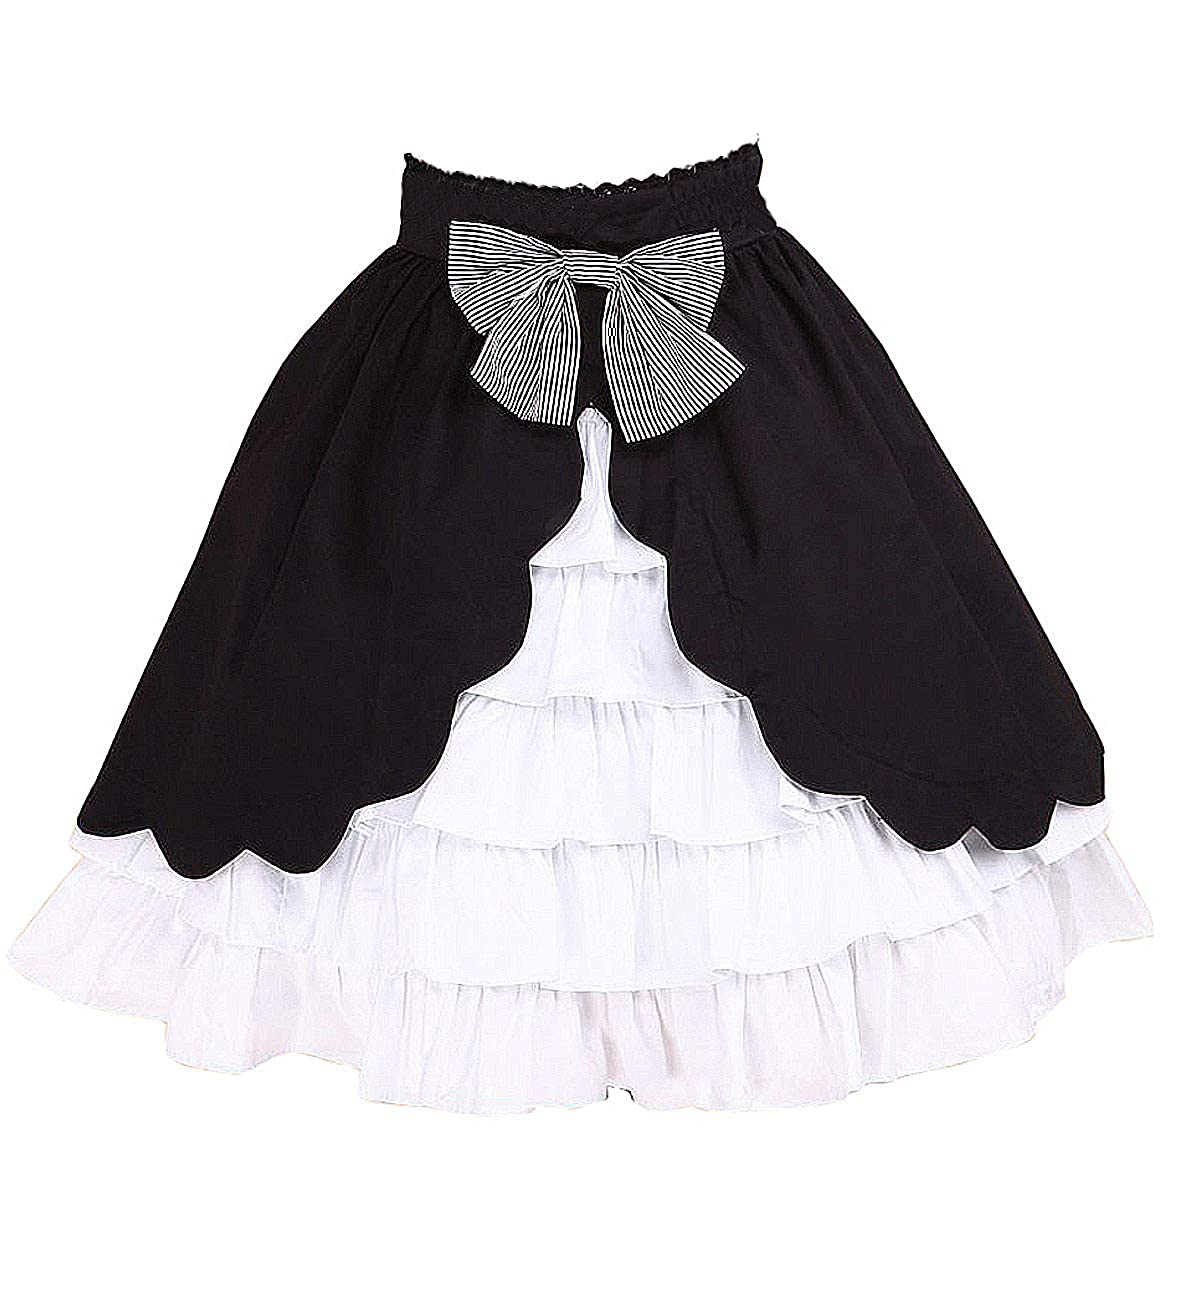 Antaina Blanca and Negra Volantes Encaje Bowknot Kawaii Sweet ...